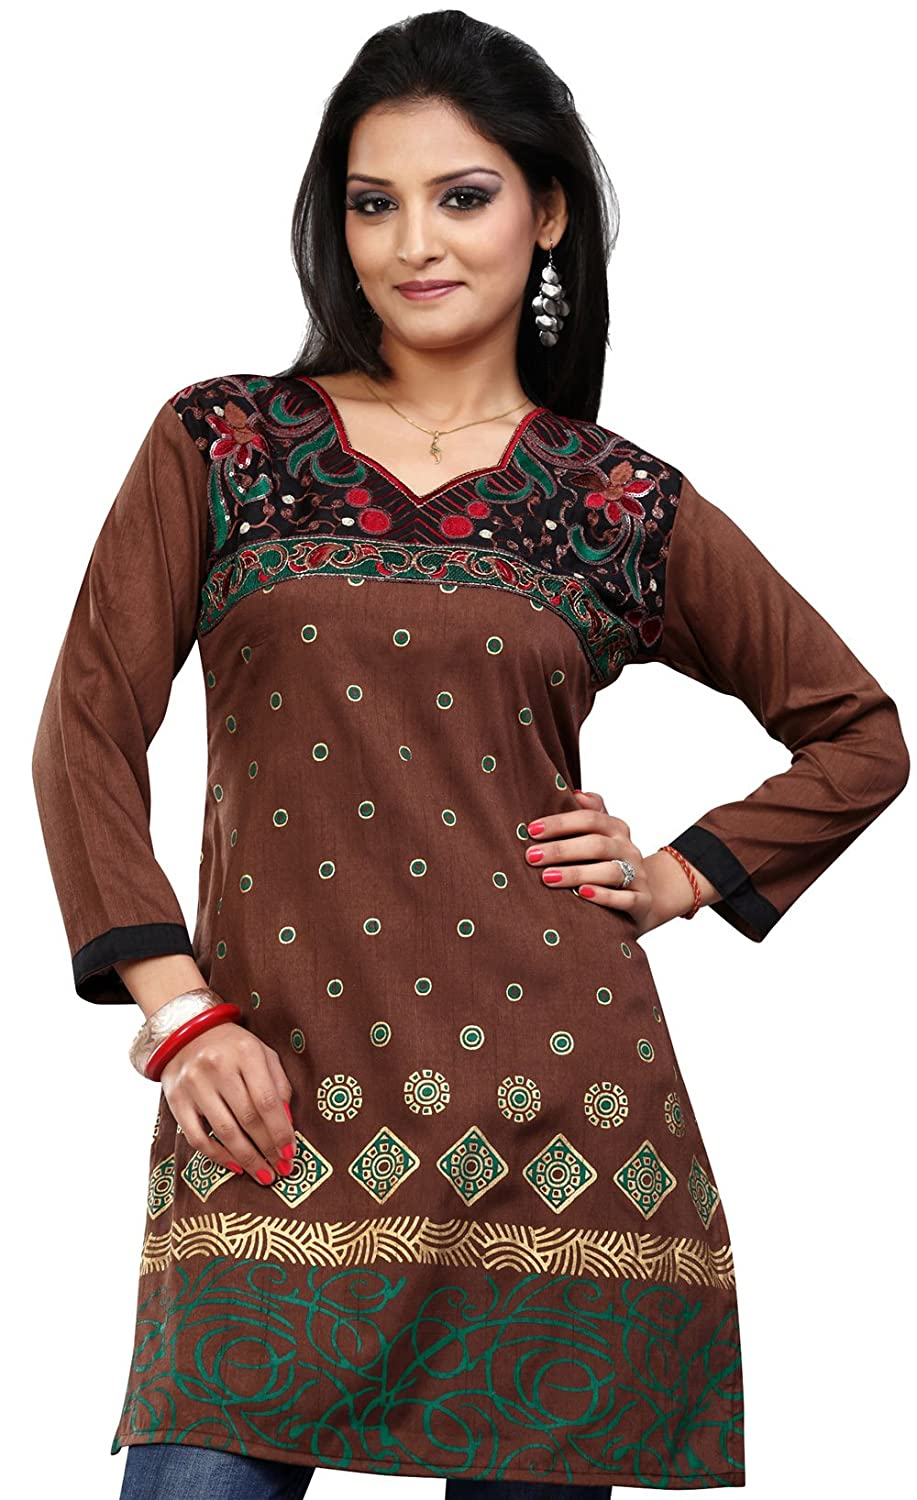 Long India Tunic Top Womens Kurti Printed Embroidered Blouse Indian Clothing